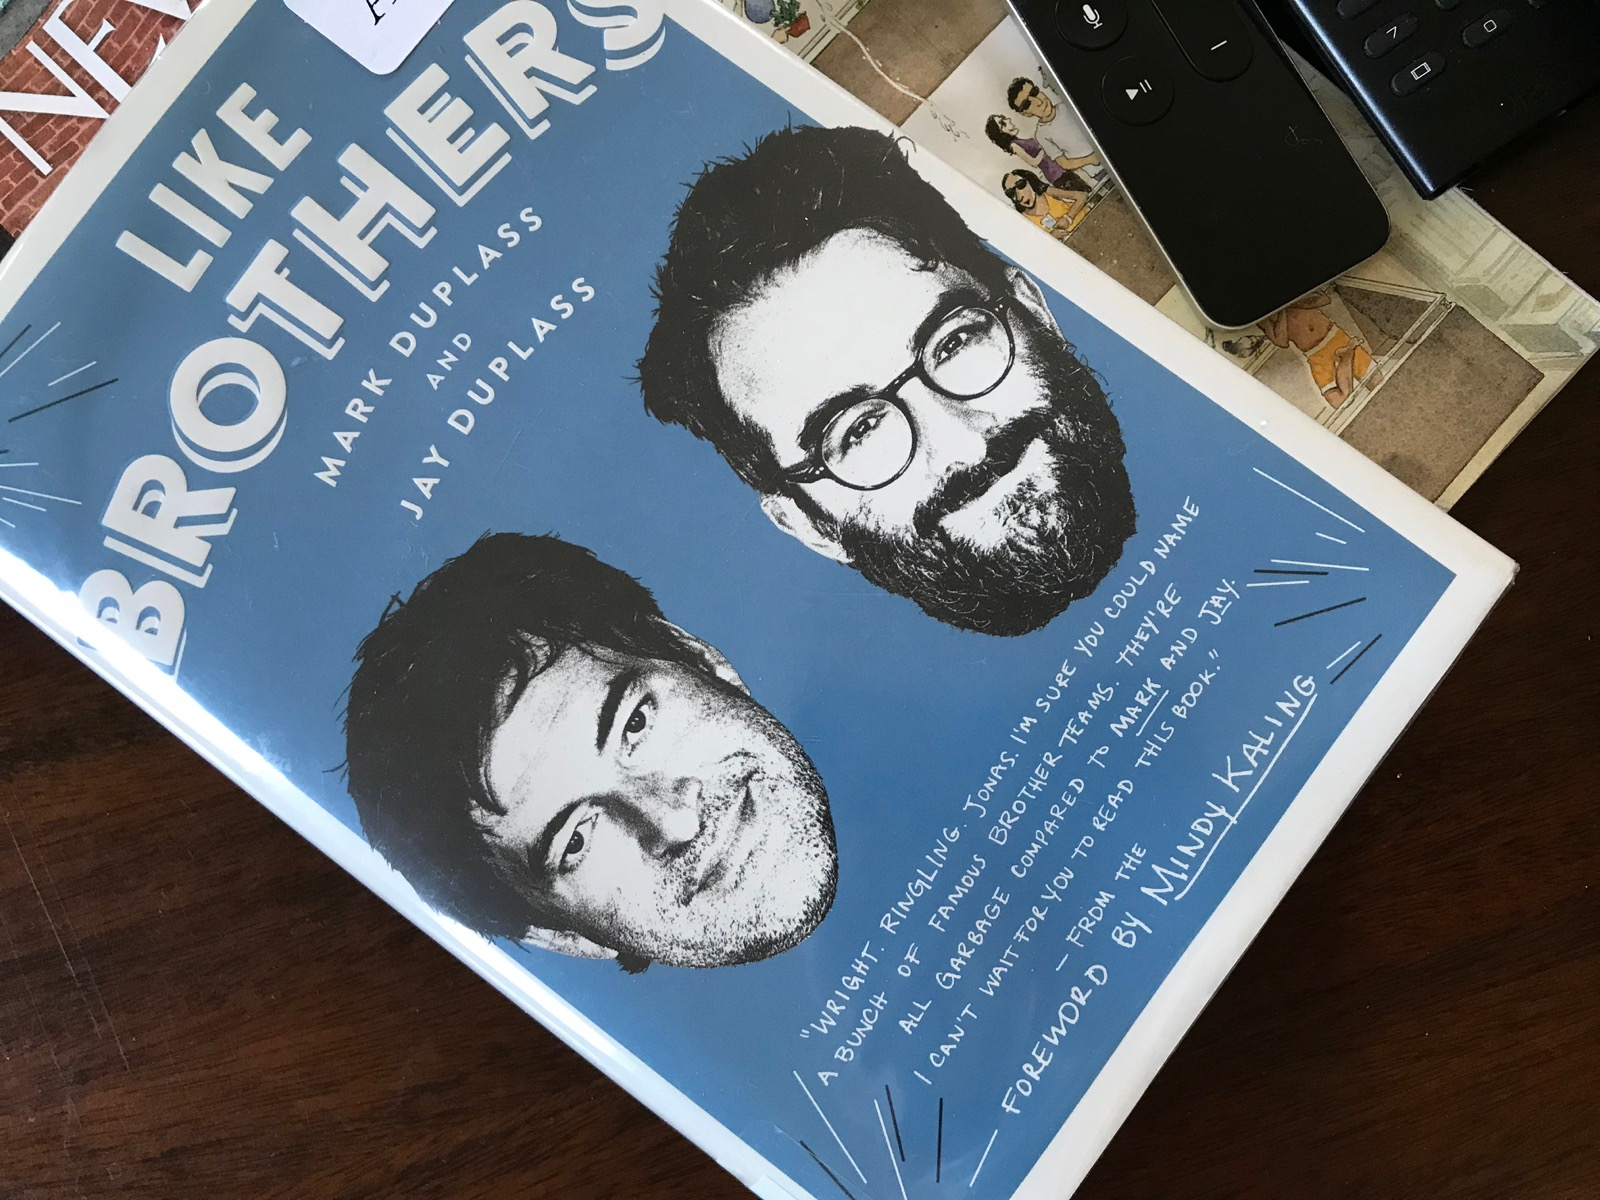 Just-Brothers-Duplass-Book.jpg